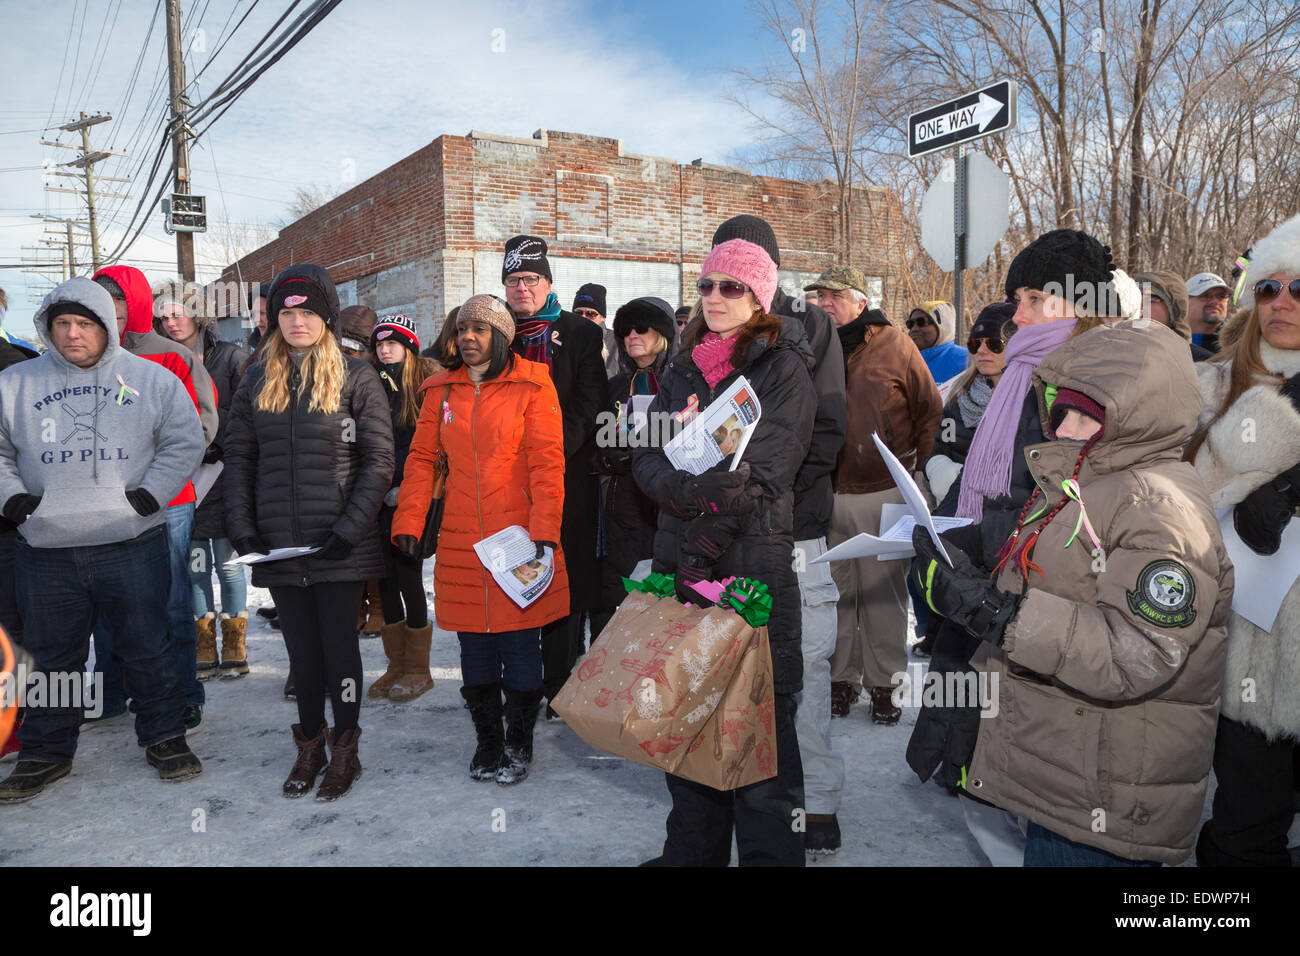 Detroit, Michigan, USA. 10th January, 2015. Family, friends, and community members gather to pray on a Detroit street - Stock Image